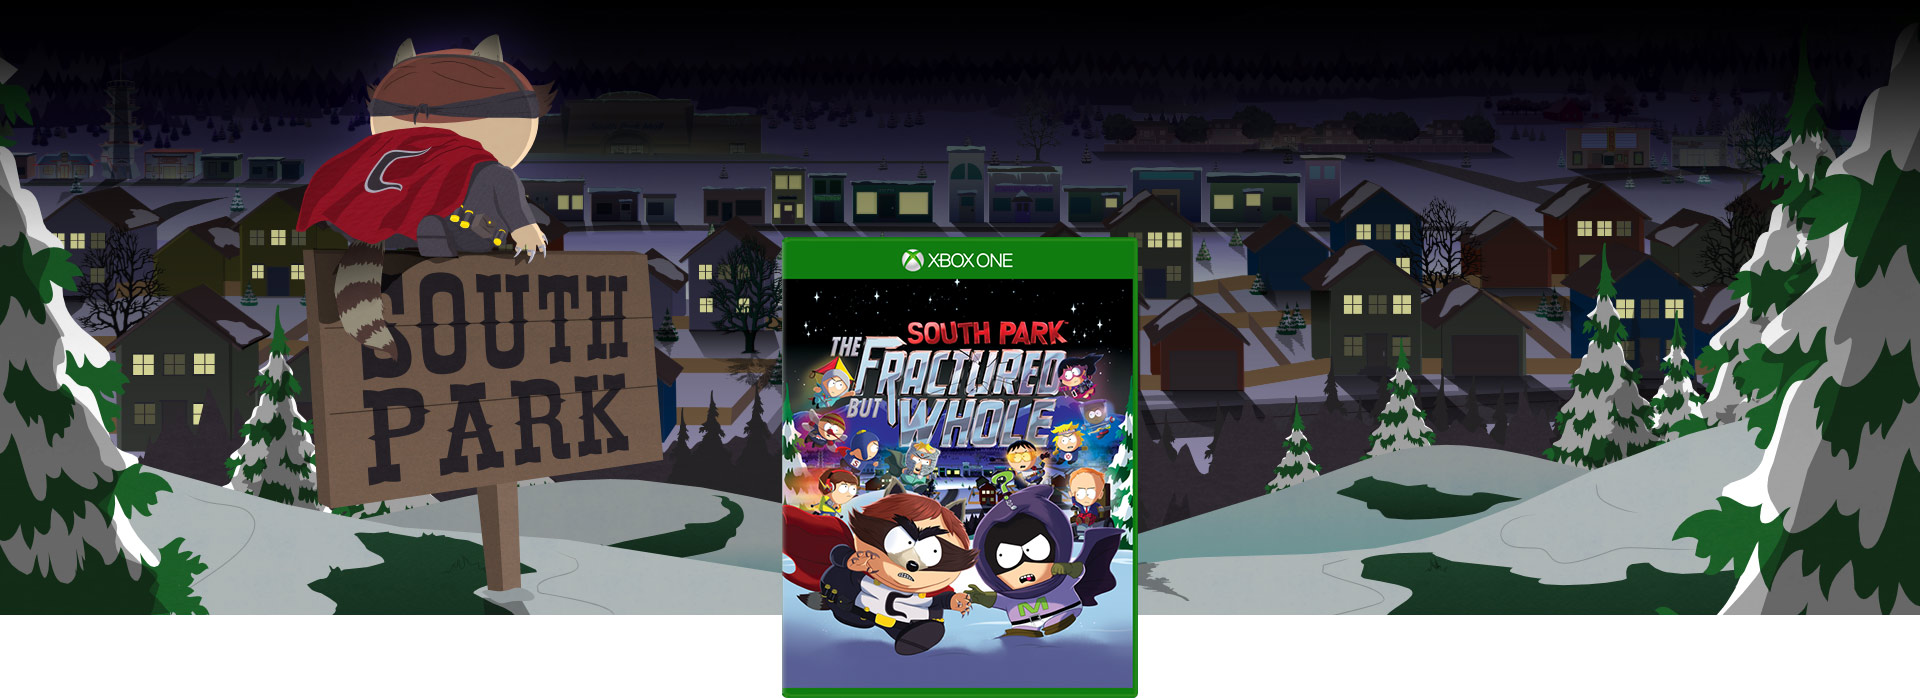 South Park: The Fractured But Whole - boxshot